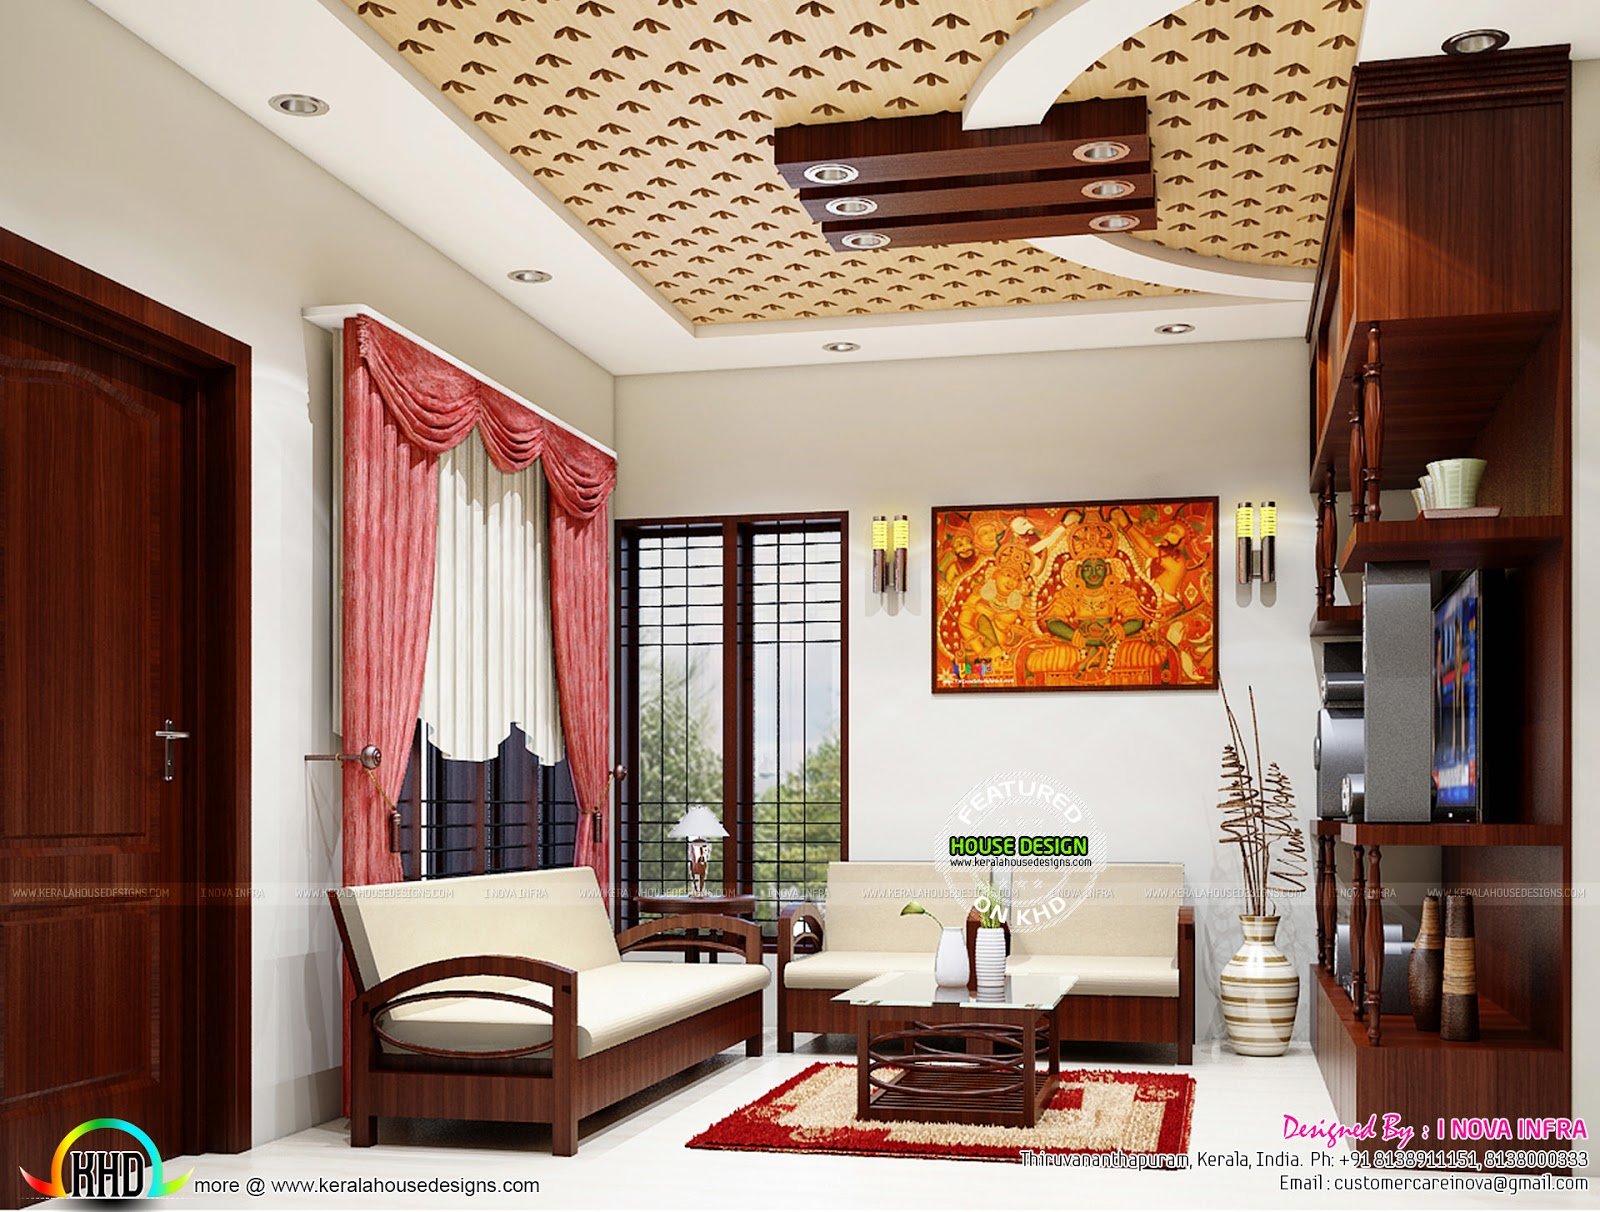 Kerala traditional interiors kerala home design and for Kerala home interior designs photos